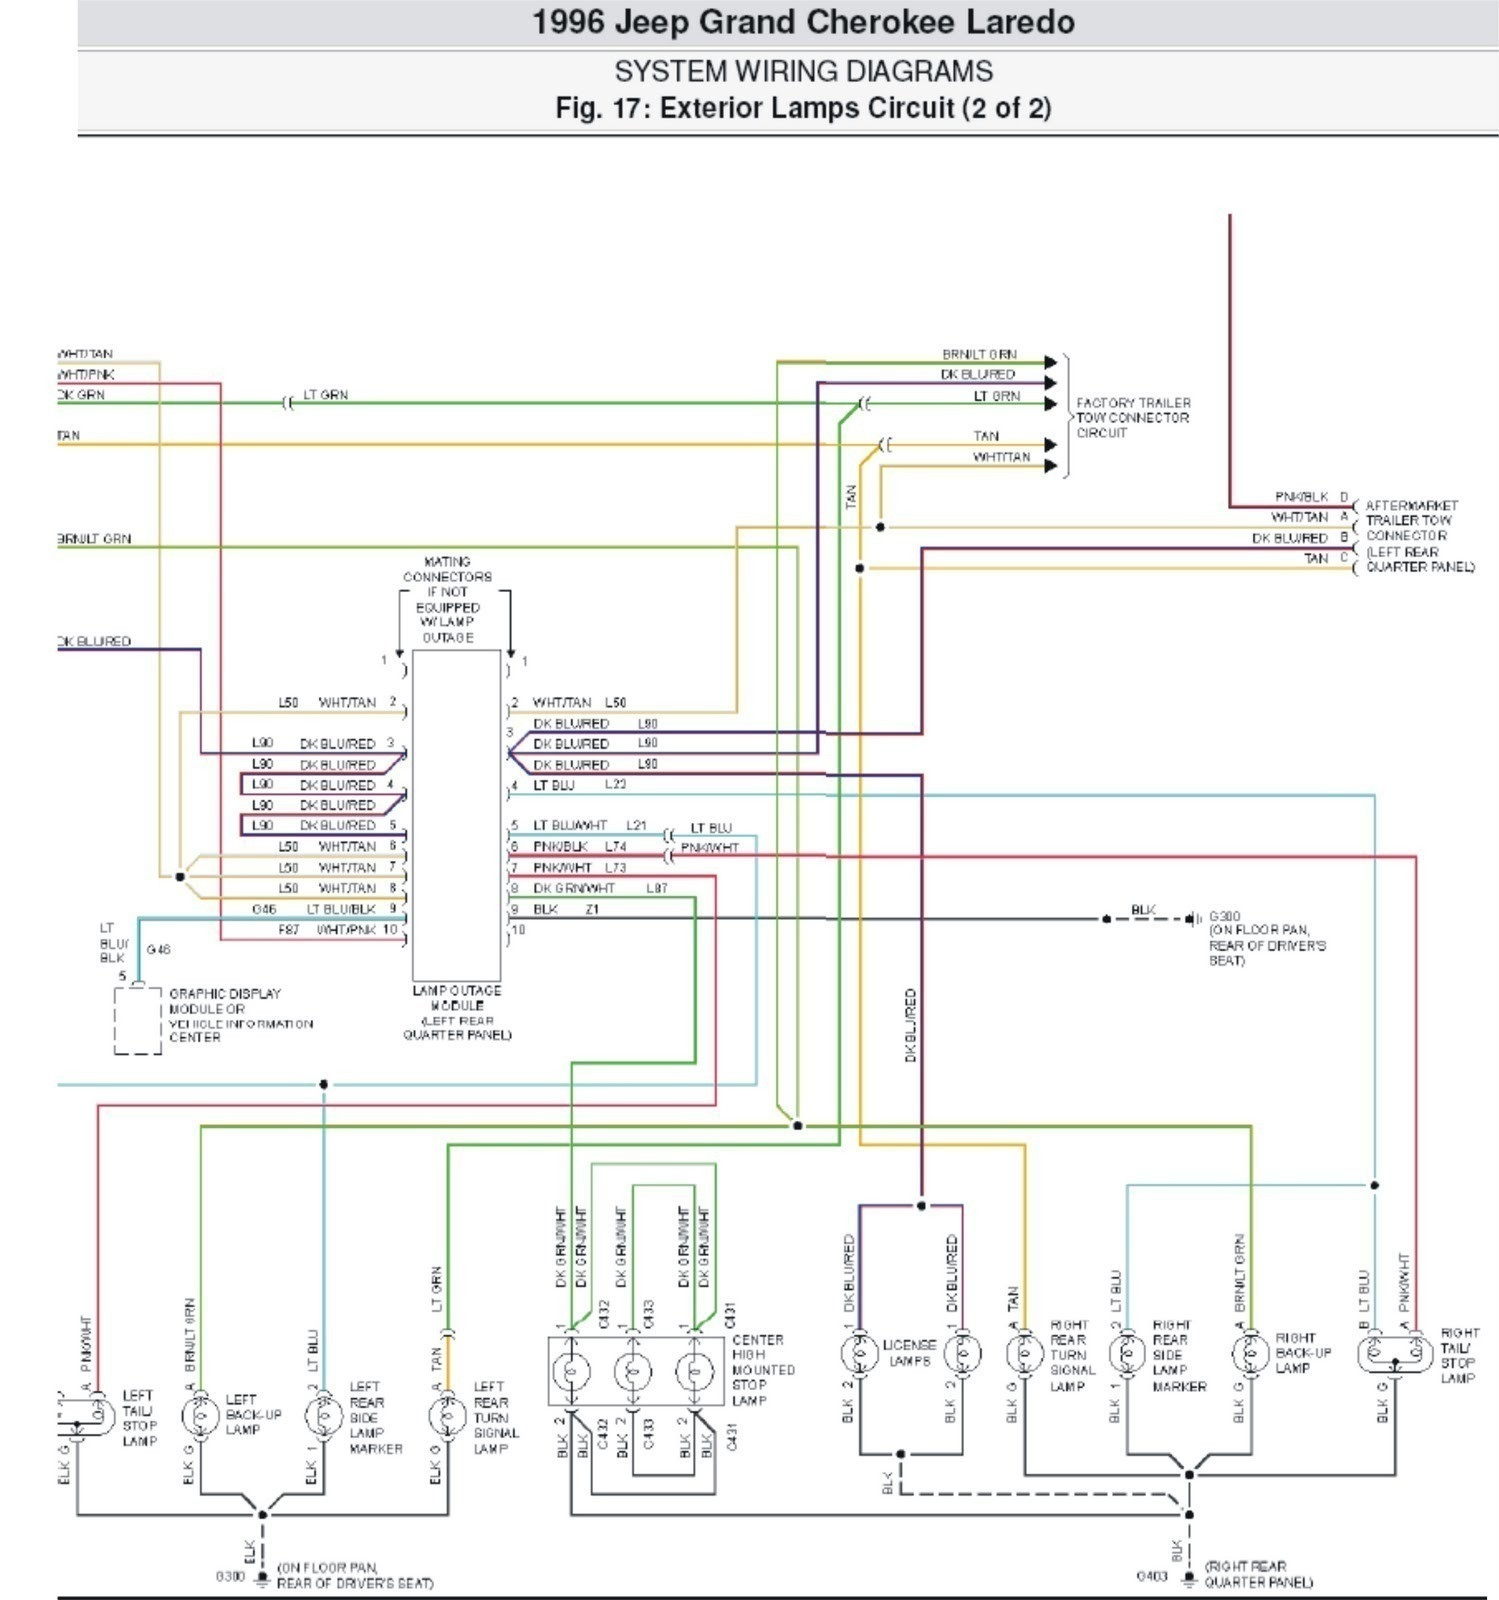 hight resolution of factory stereo wire diagram 2001 jeep grand cherokee laredo wiring car radio stereo audio wiring diagram 1995 jeep cherokee